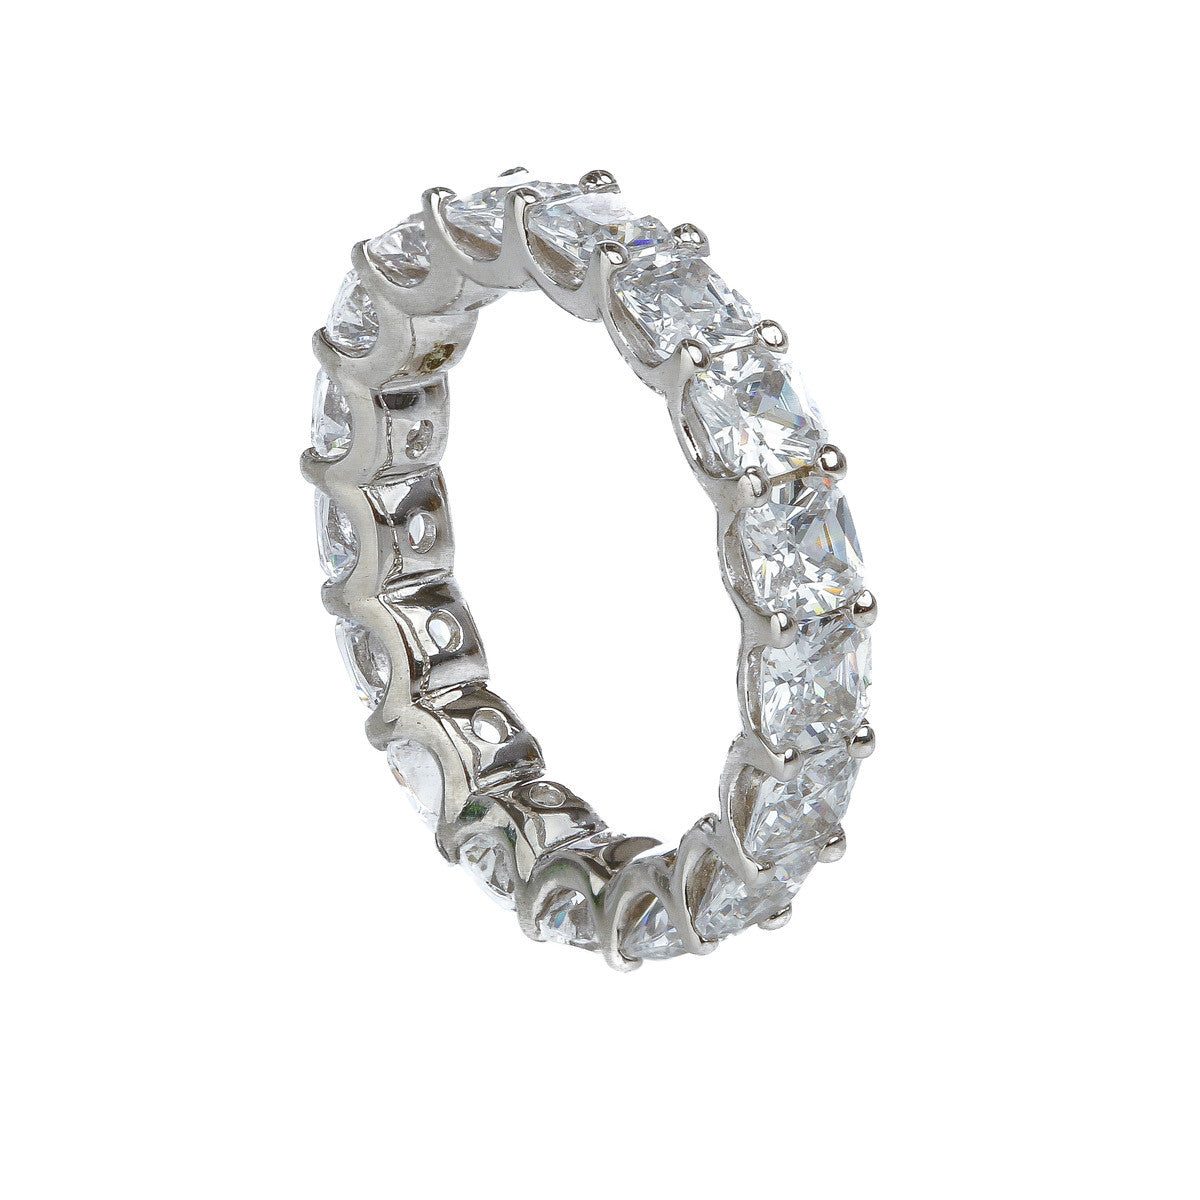 eternity band ring large bands context p beaverbrooks gold white zirconia cubic